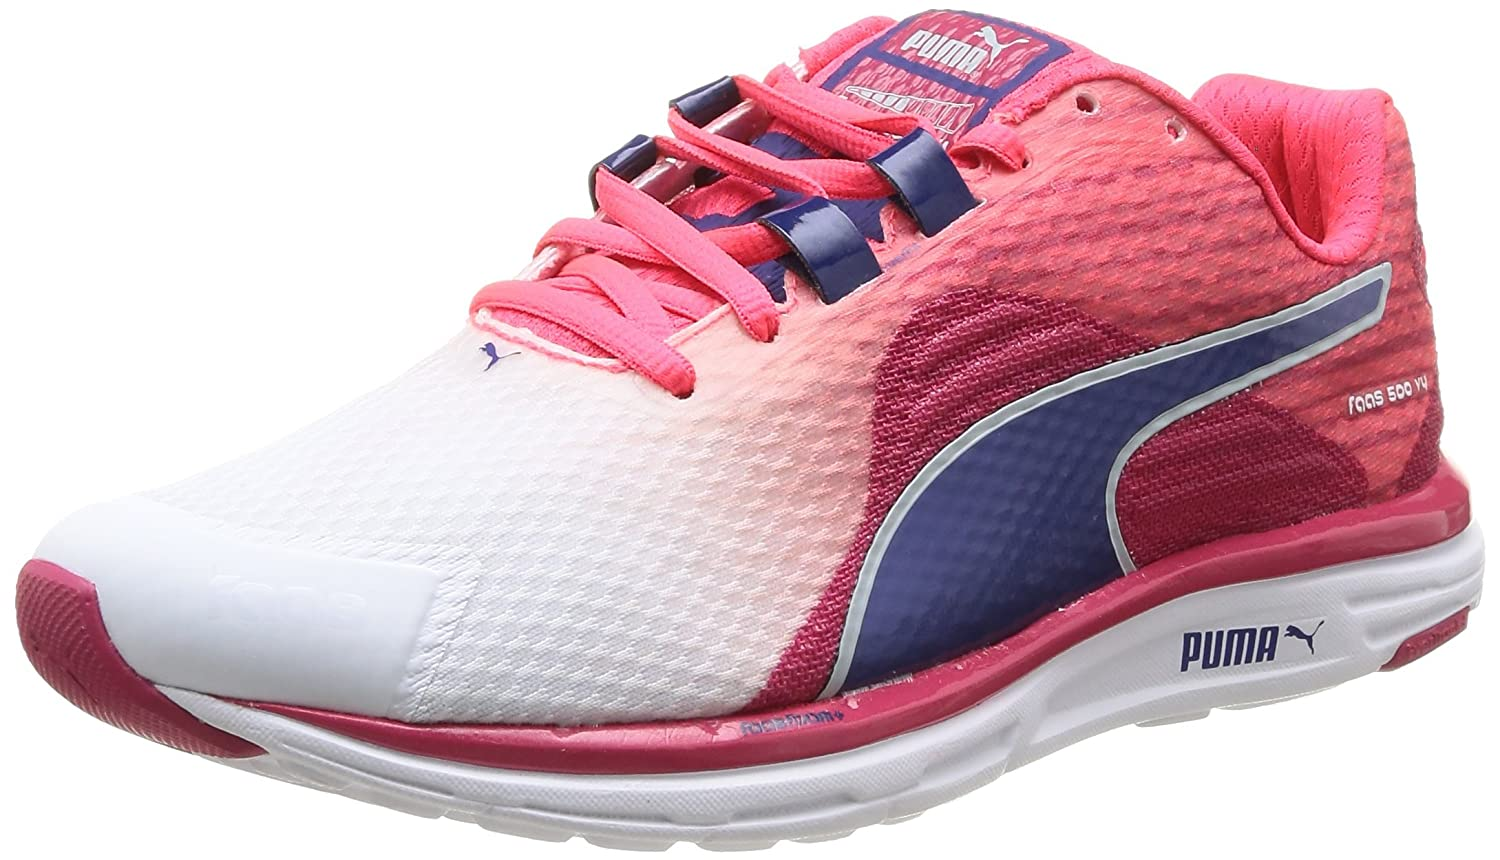 Puma Womens Faas 500 v4 Wn White PinkBlueprintPink Mesh Running Shoes   4 UKIndia 37 EU Amazonin Shoes  Handbags